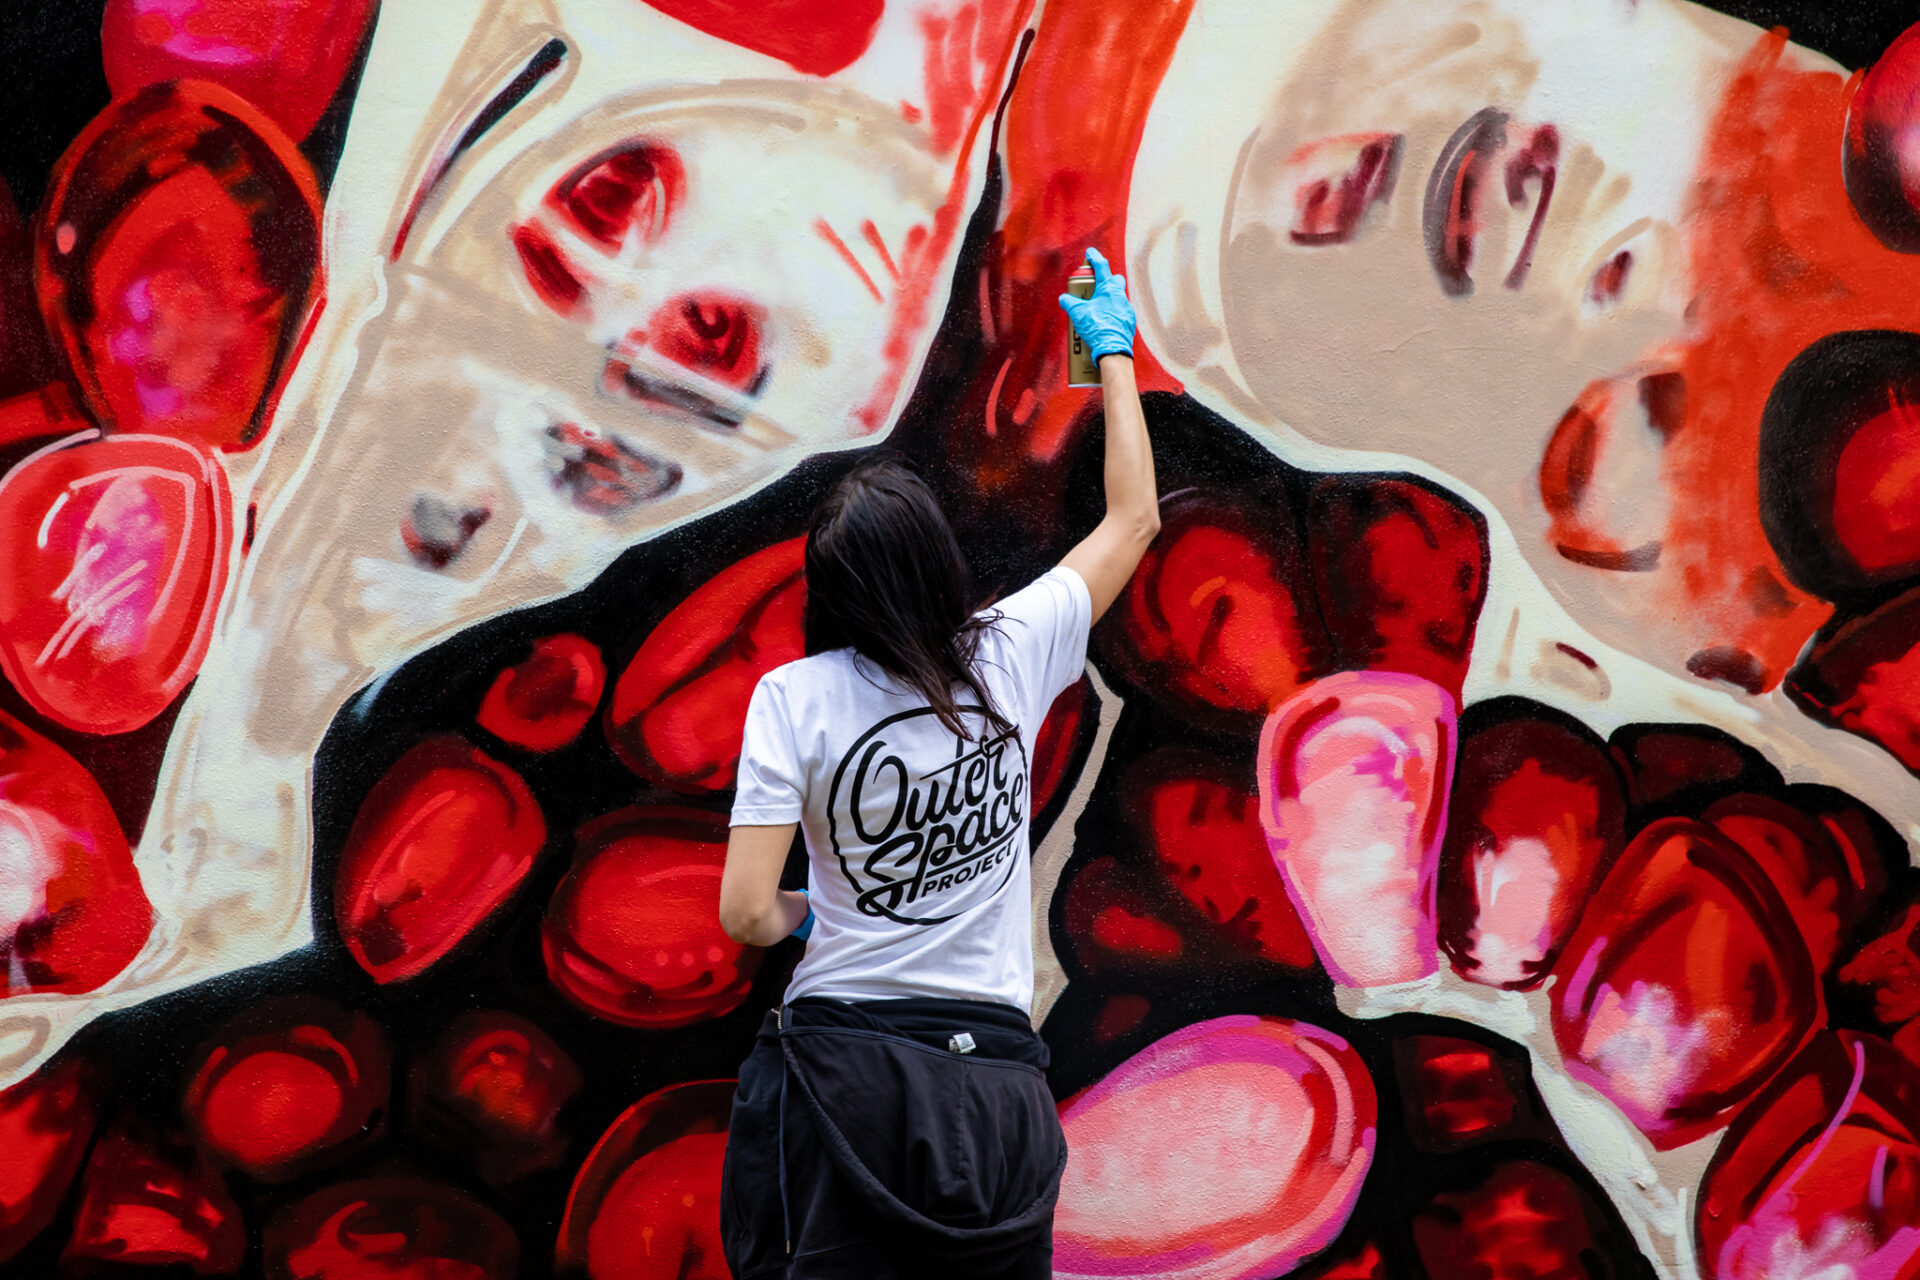 Angela Faustina, POMEGRANATE XLVI mural for OuterSpace Project Mission 5, Atlanta, GA. Photo: DV Photo Video